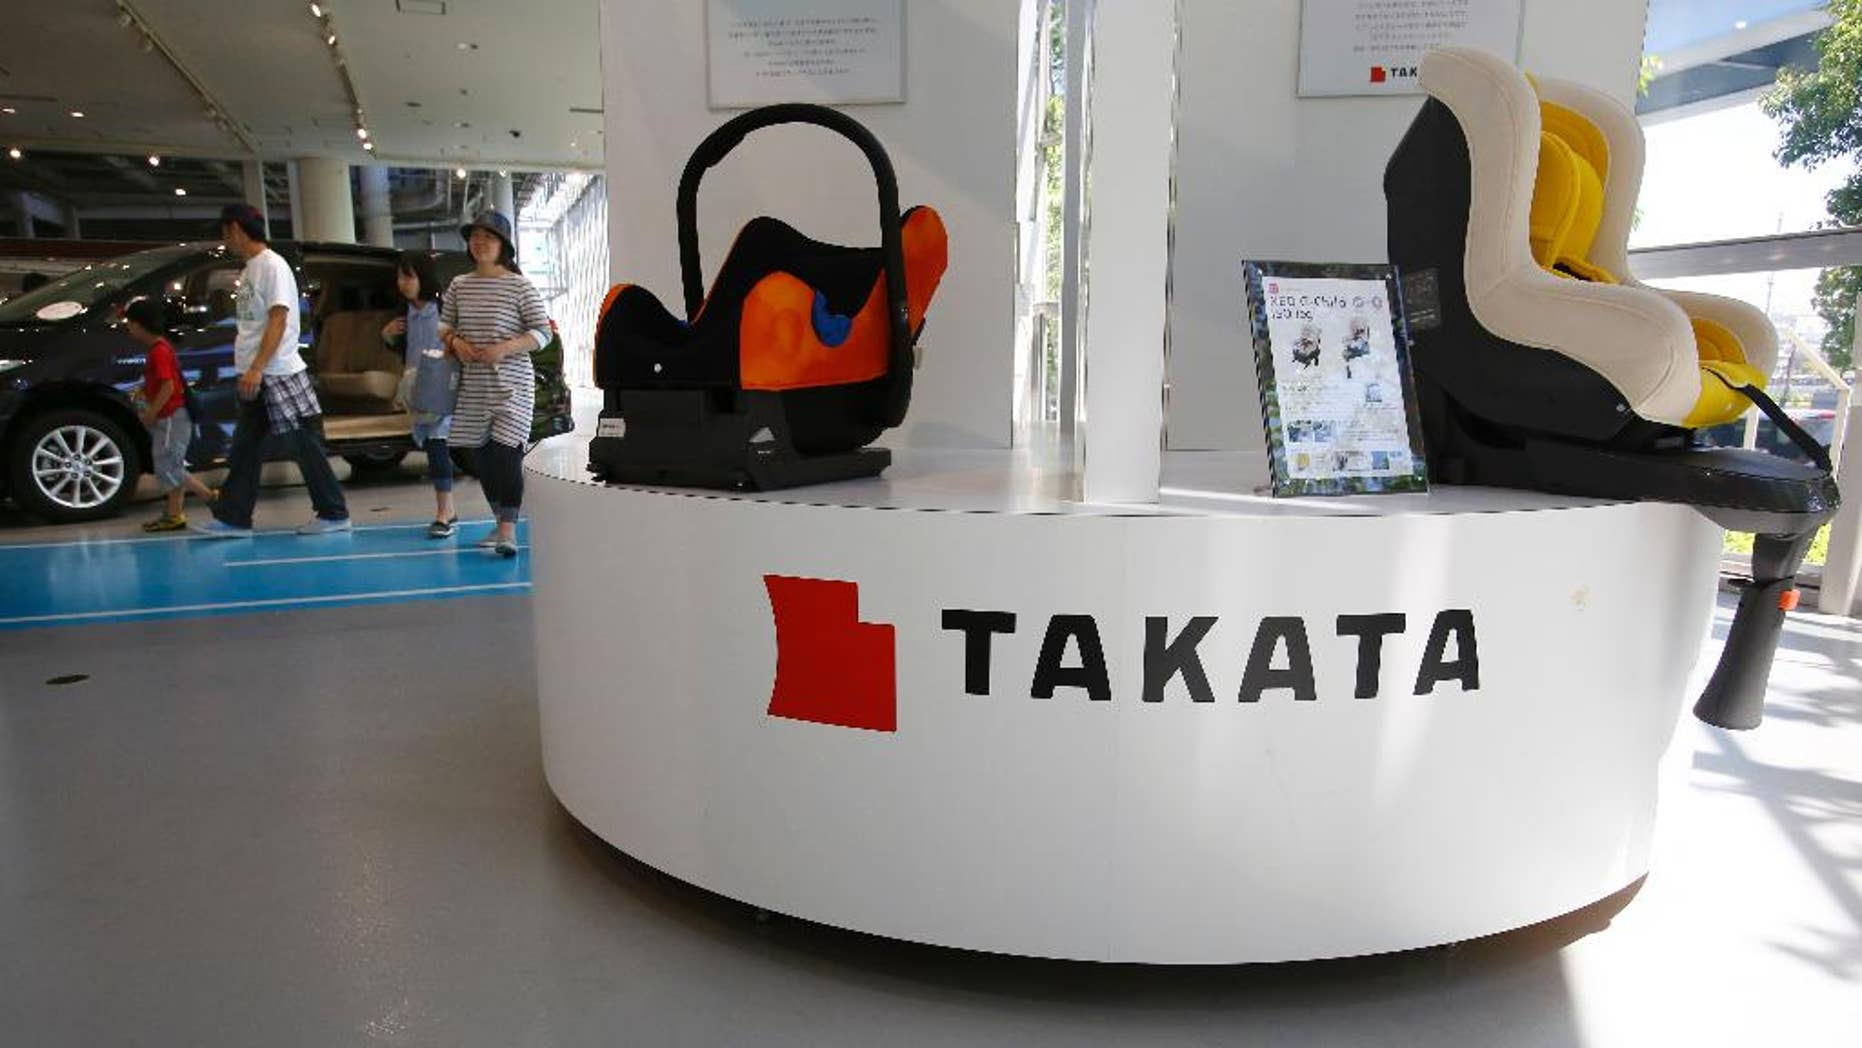 In this Wednesday, May 4, 2016 photo, a family walk by child seats manufactured by Japanese auto parts maker Takata Corp. at an automaker's showroom in Tokyo. Takata, which also makes seat belts, is expecting a loss instead of a profit for the fiscal year that ended in March because of ballooning costs from a massive global air-bag recall. Tokyo-based Takata, which is set to give its earnings report Wednesday, May 11, said Monday, May 9, it is projecting an annual net loss of 13 billion yen ($120 million). (AP Photo/Shizuo Kambayashi)